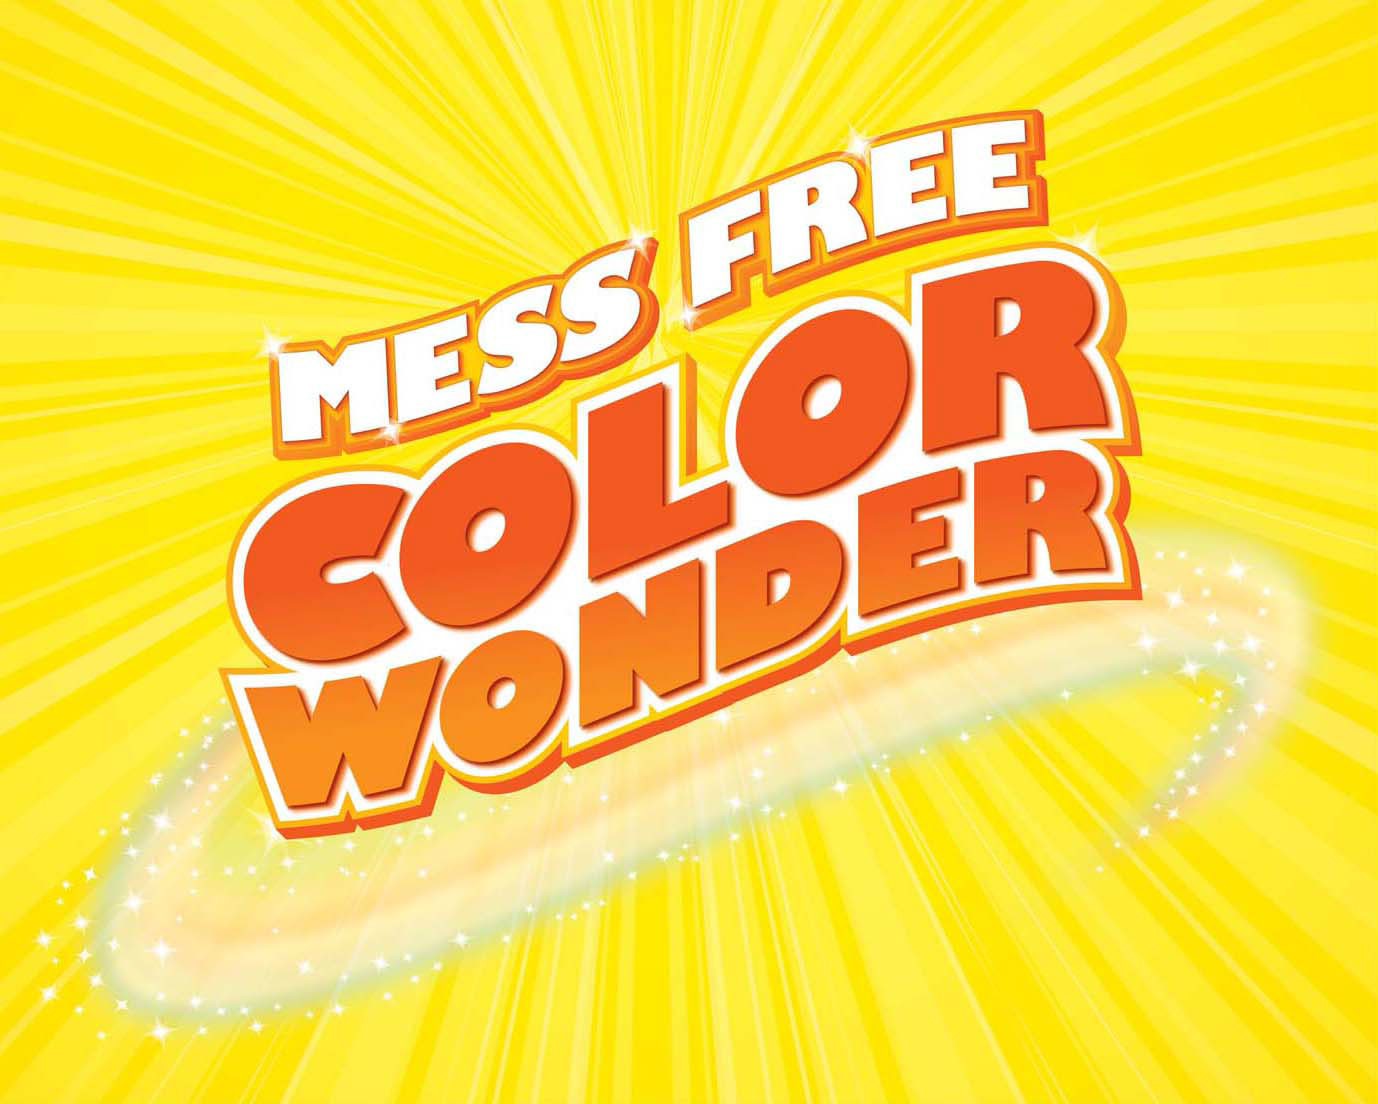 Nathan Green_Logos_Mess Free Color Wonder